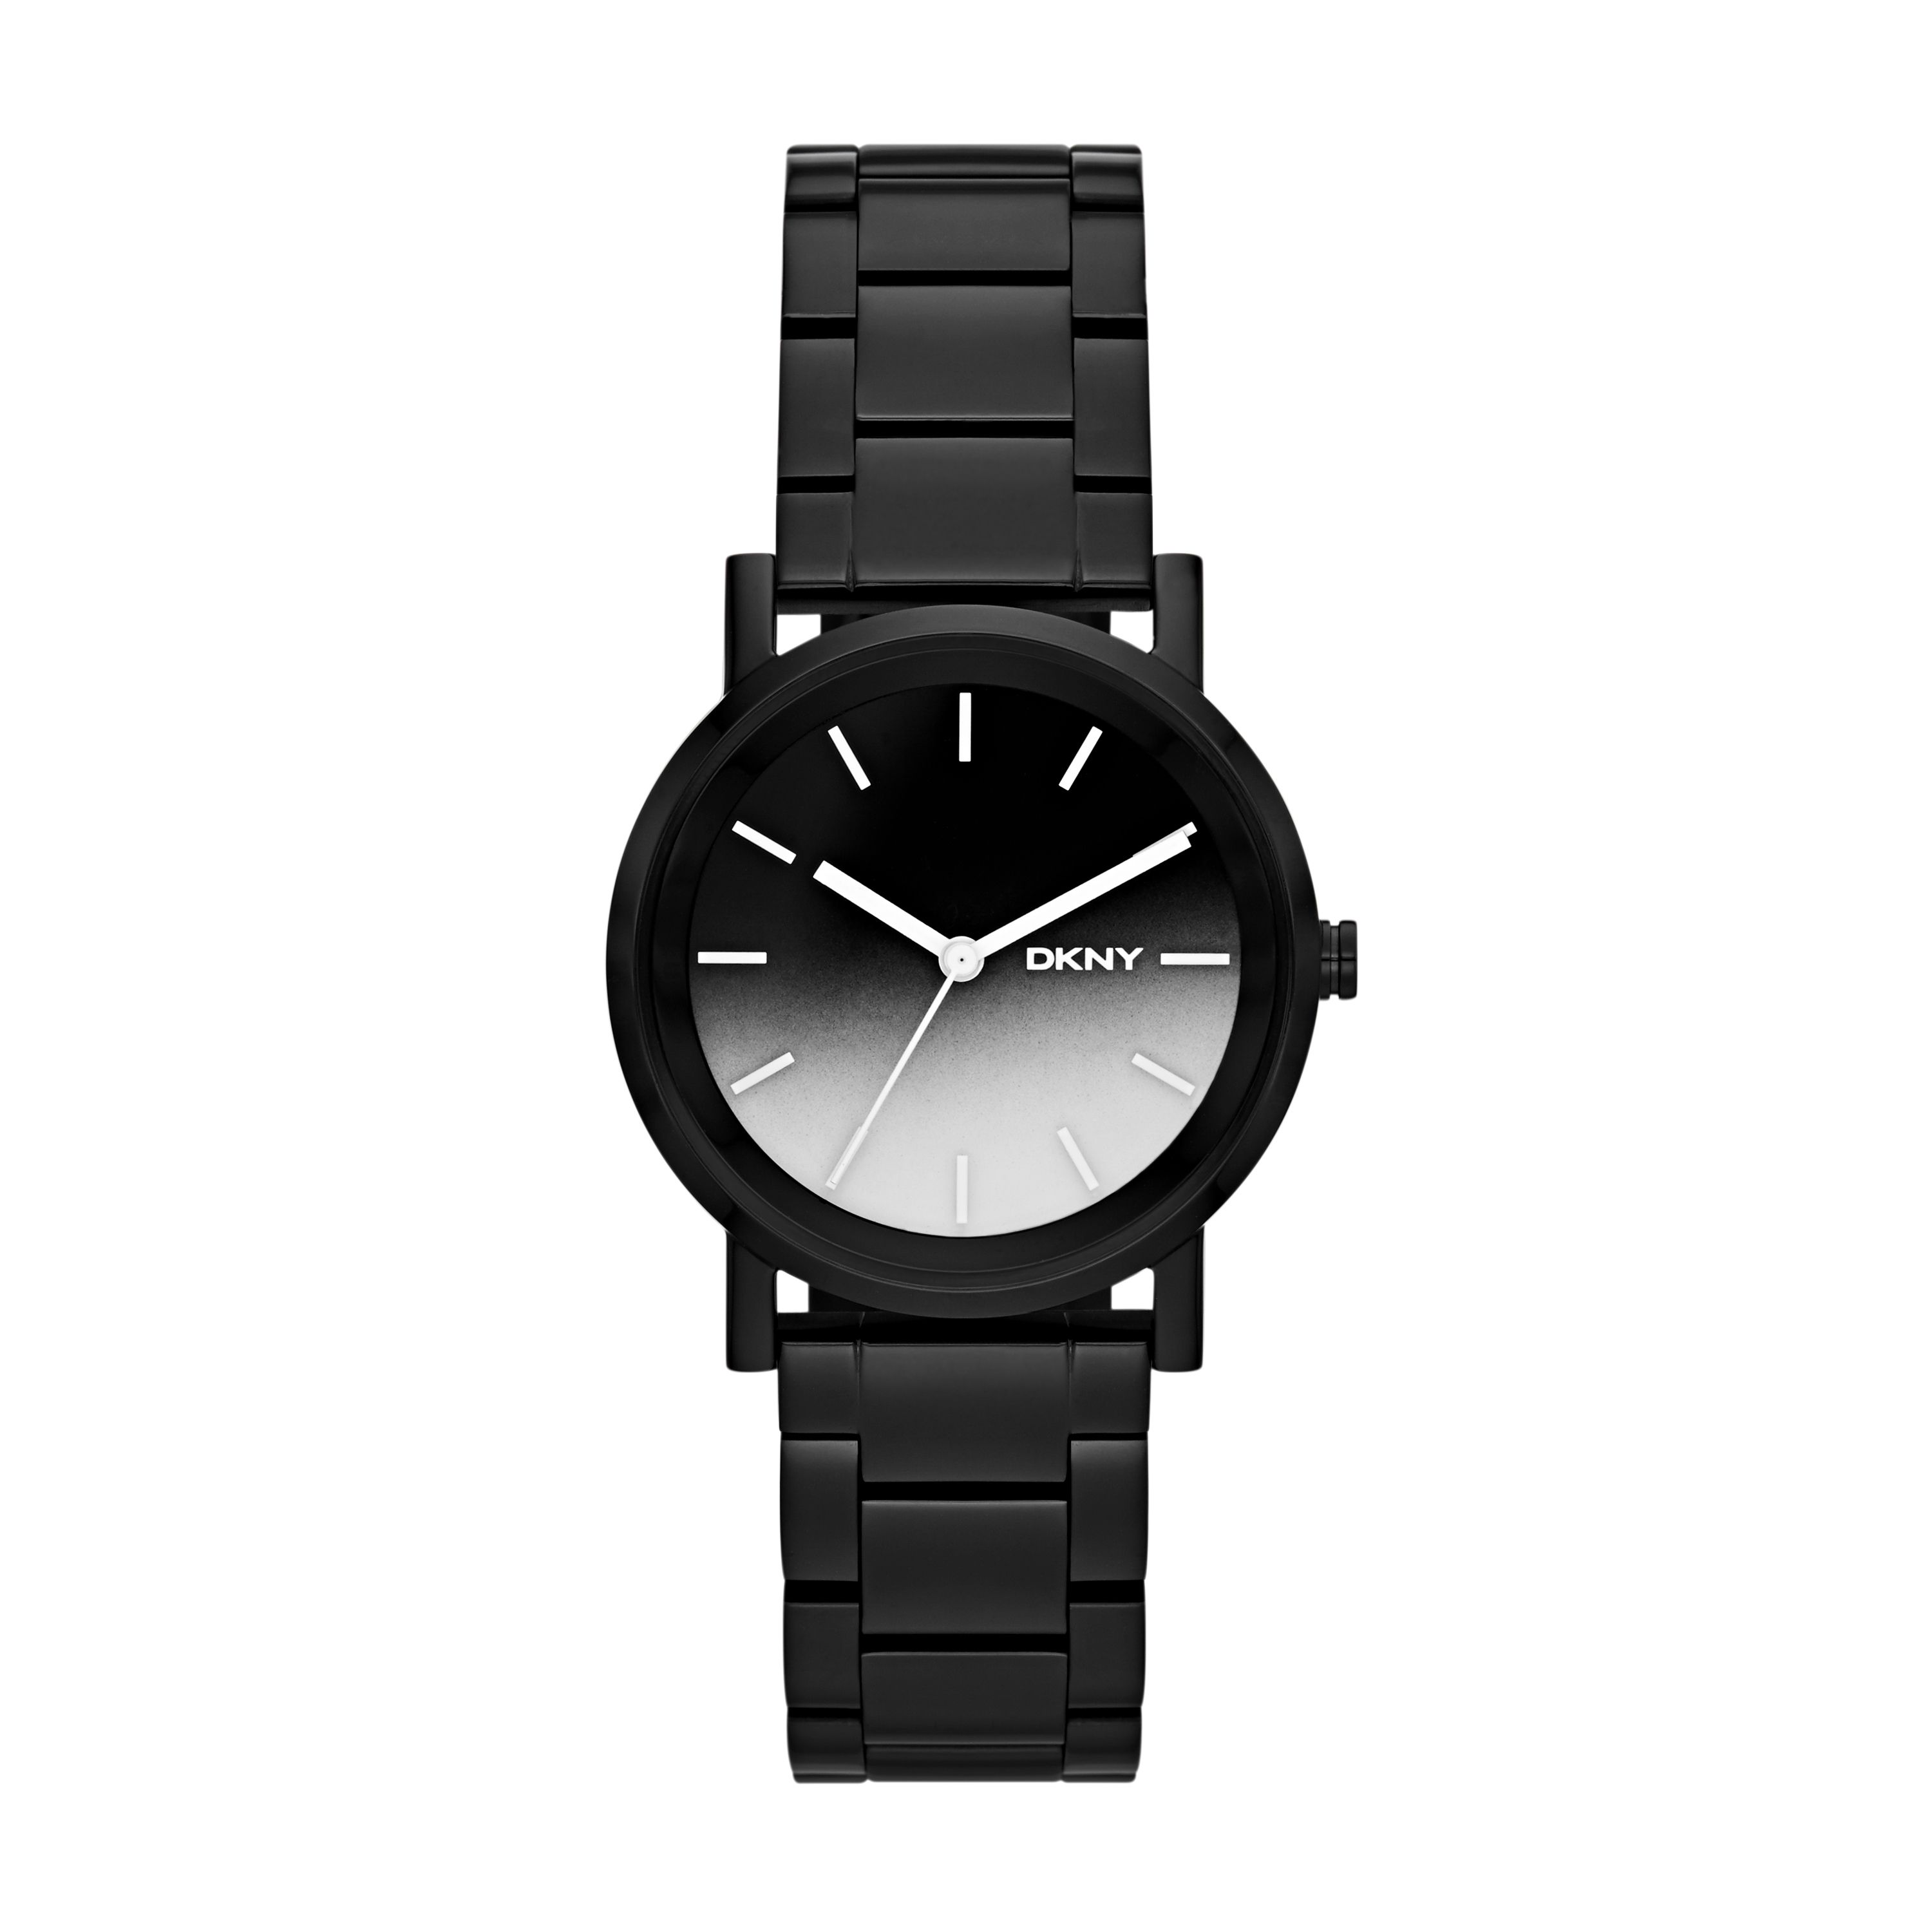 NY2184 Edge ladies black bracelet watch